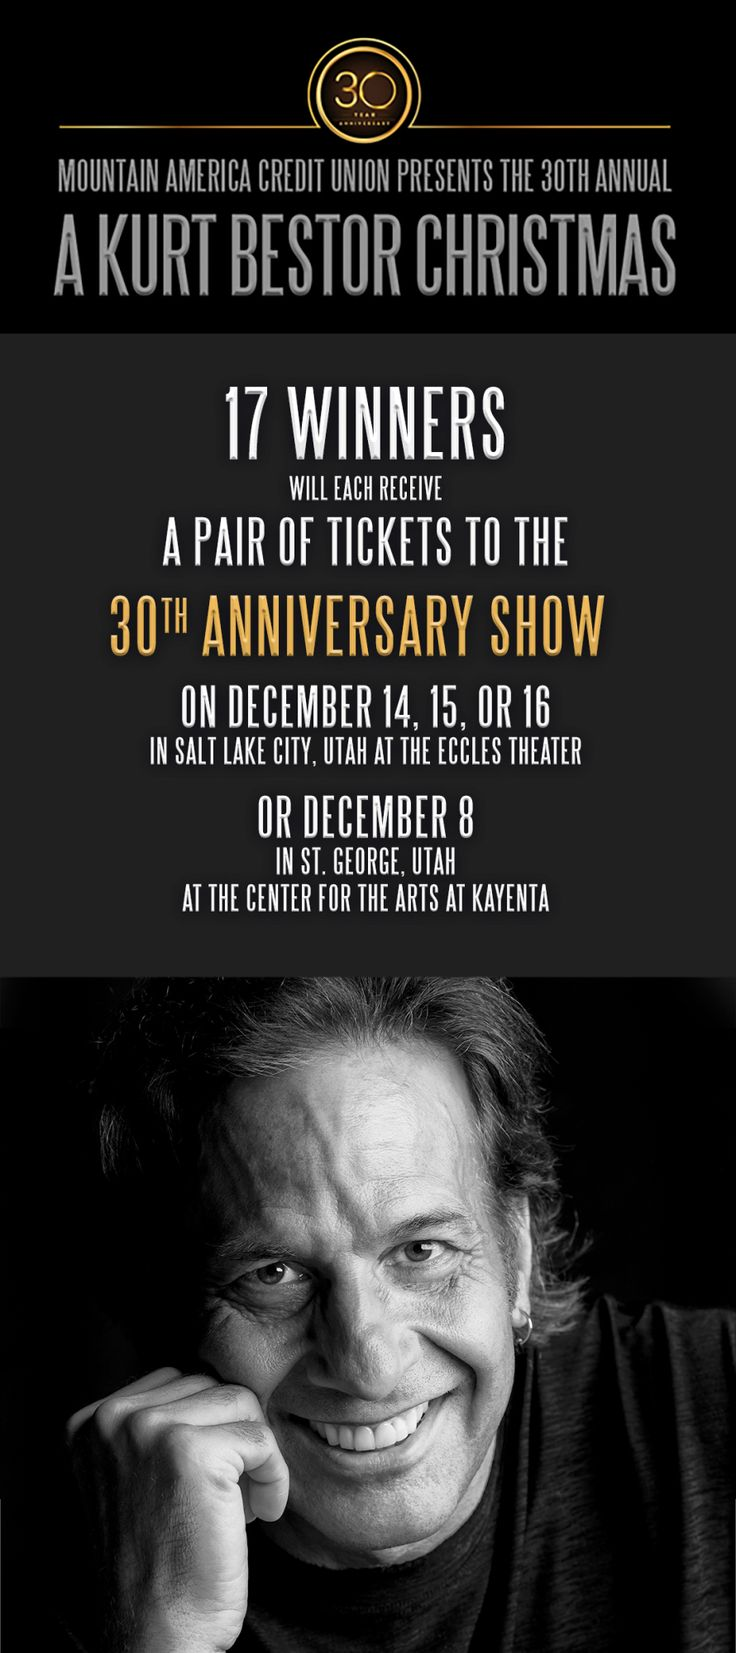 Enter to WIN tickets to see the 30th Anniversary ofA Kurt Bestor Christmas from Mountain America Credit Union.